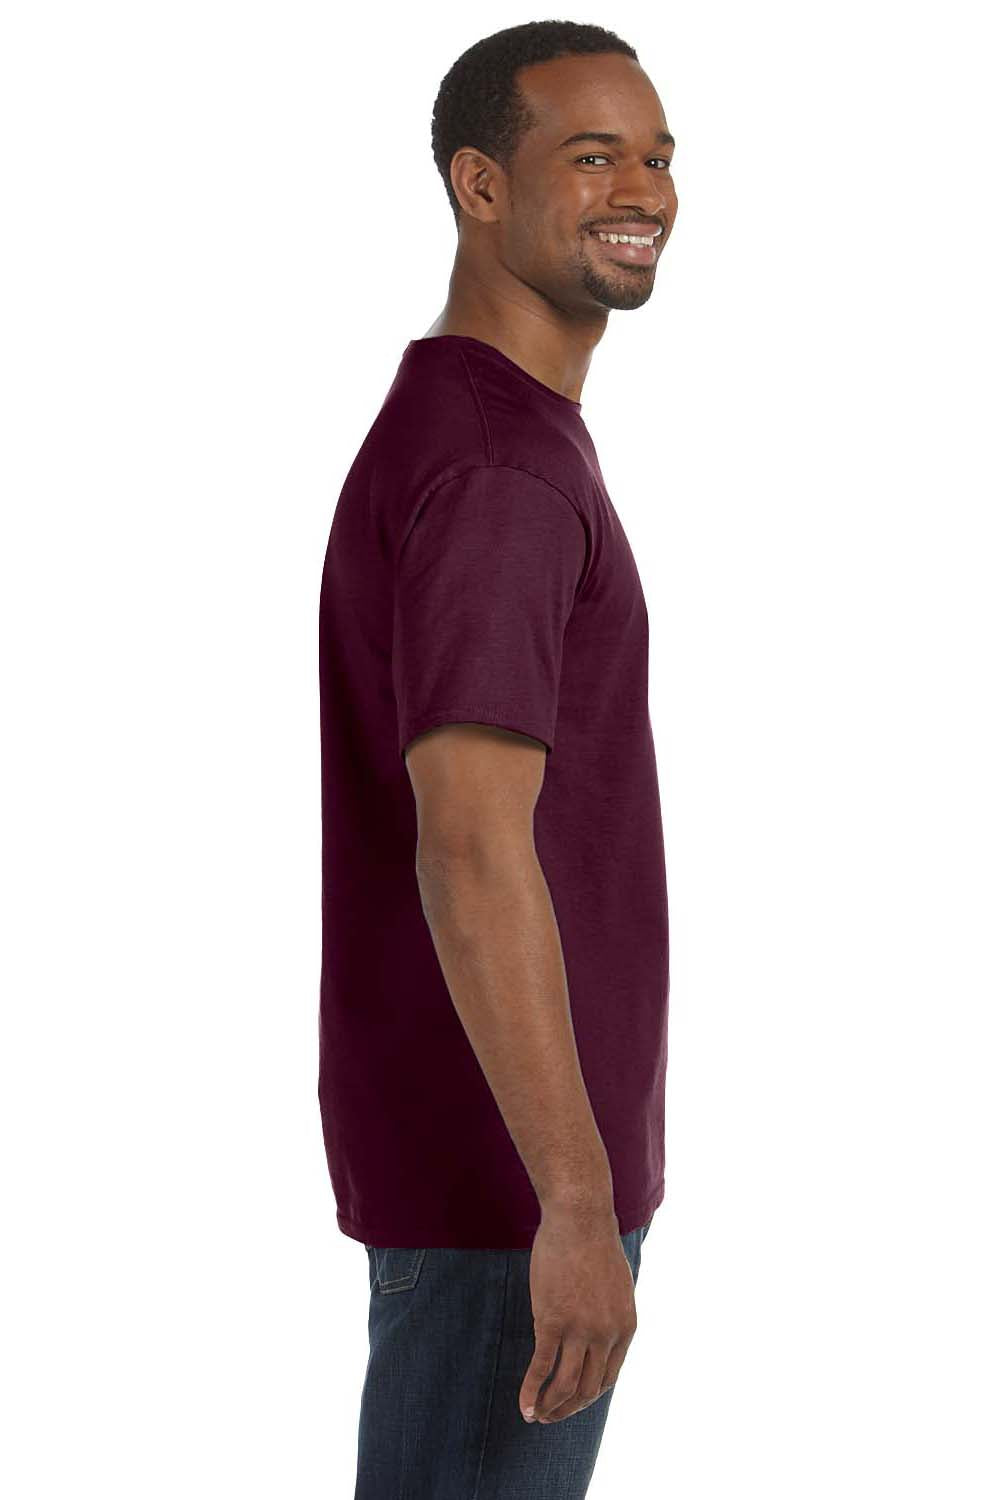 Hanes 5250T Mens ComfortSoft Short Sleeve Crewneck T-Shirt Maroon Side